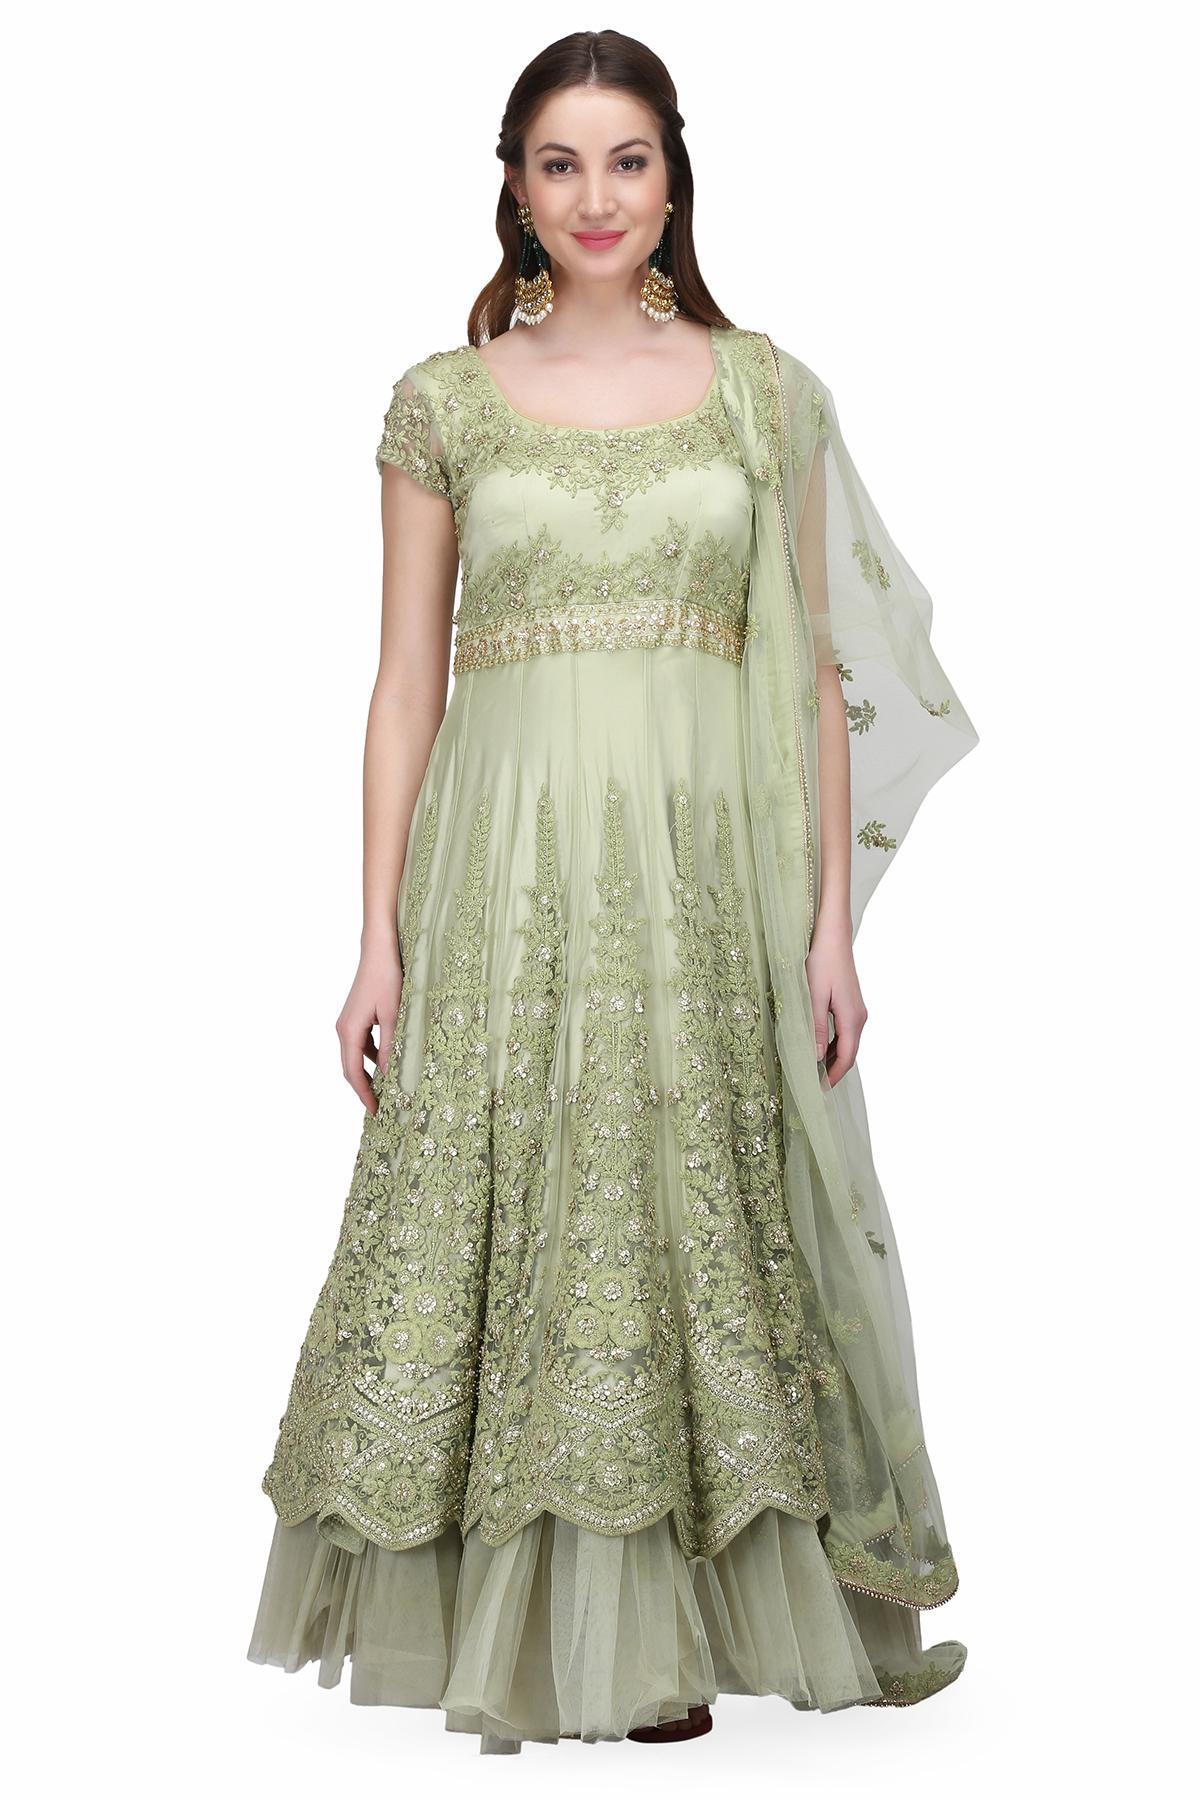 9ec1e87f Pistachio Pistachio Green Gown by Nikunj Sharma for rent online ...